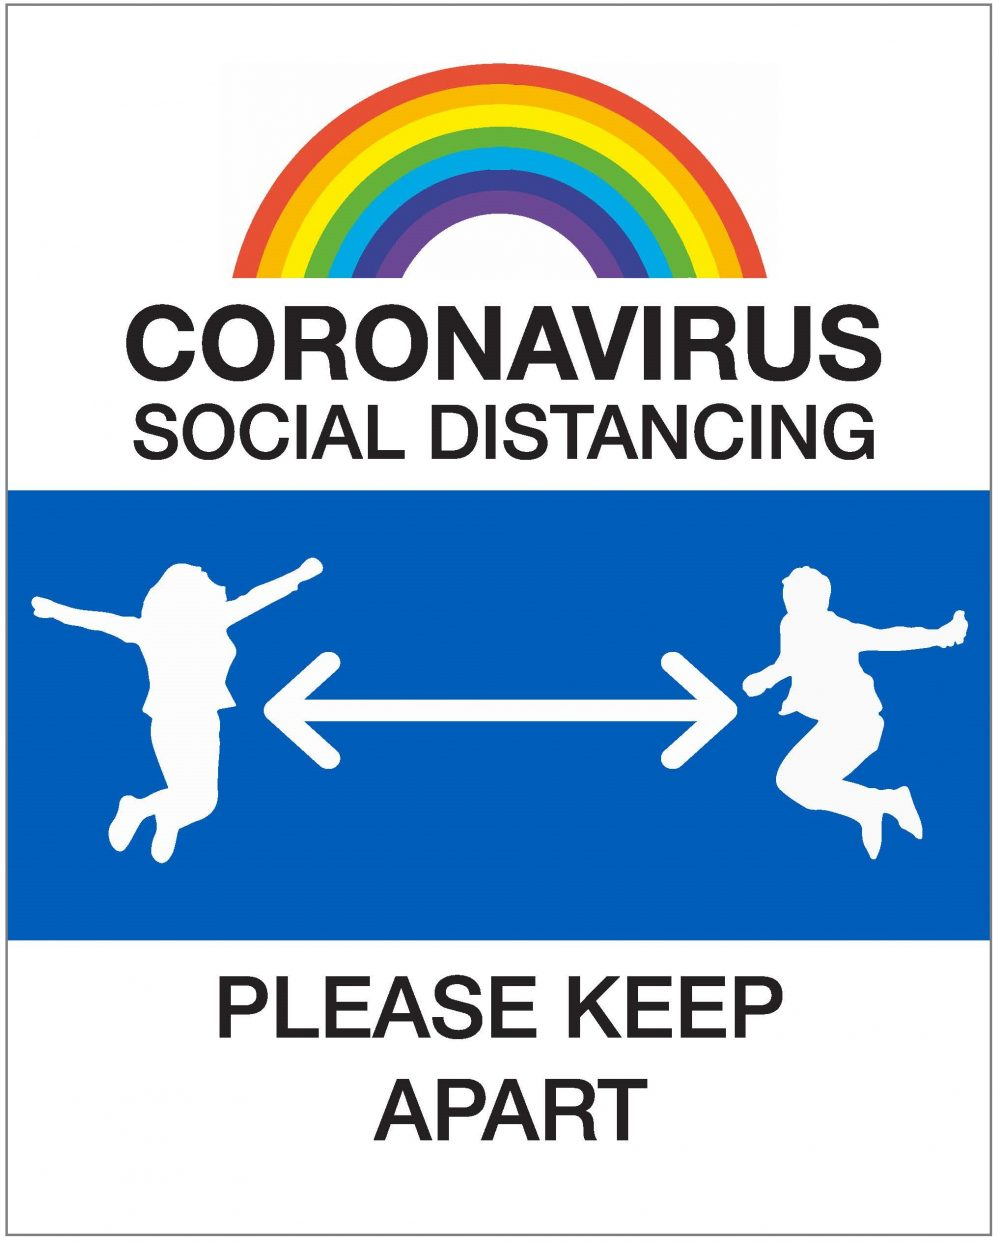 4791 COVID 19 School sign social distancing